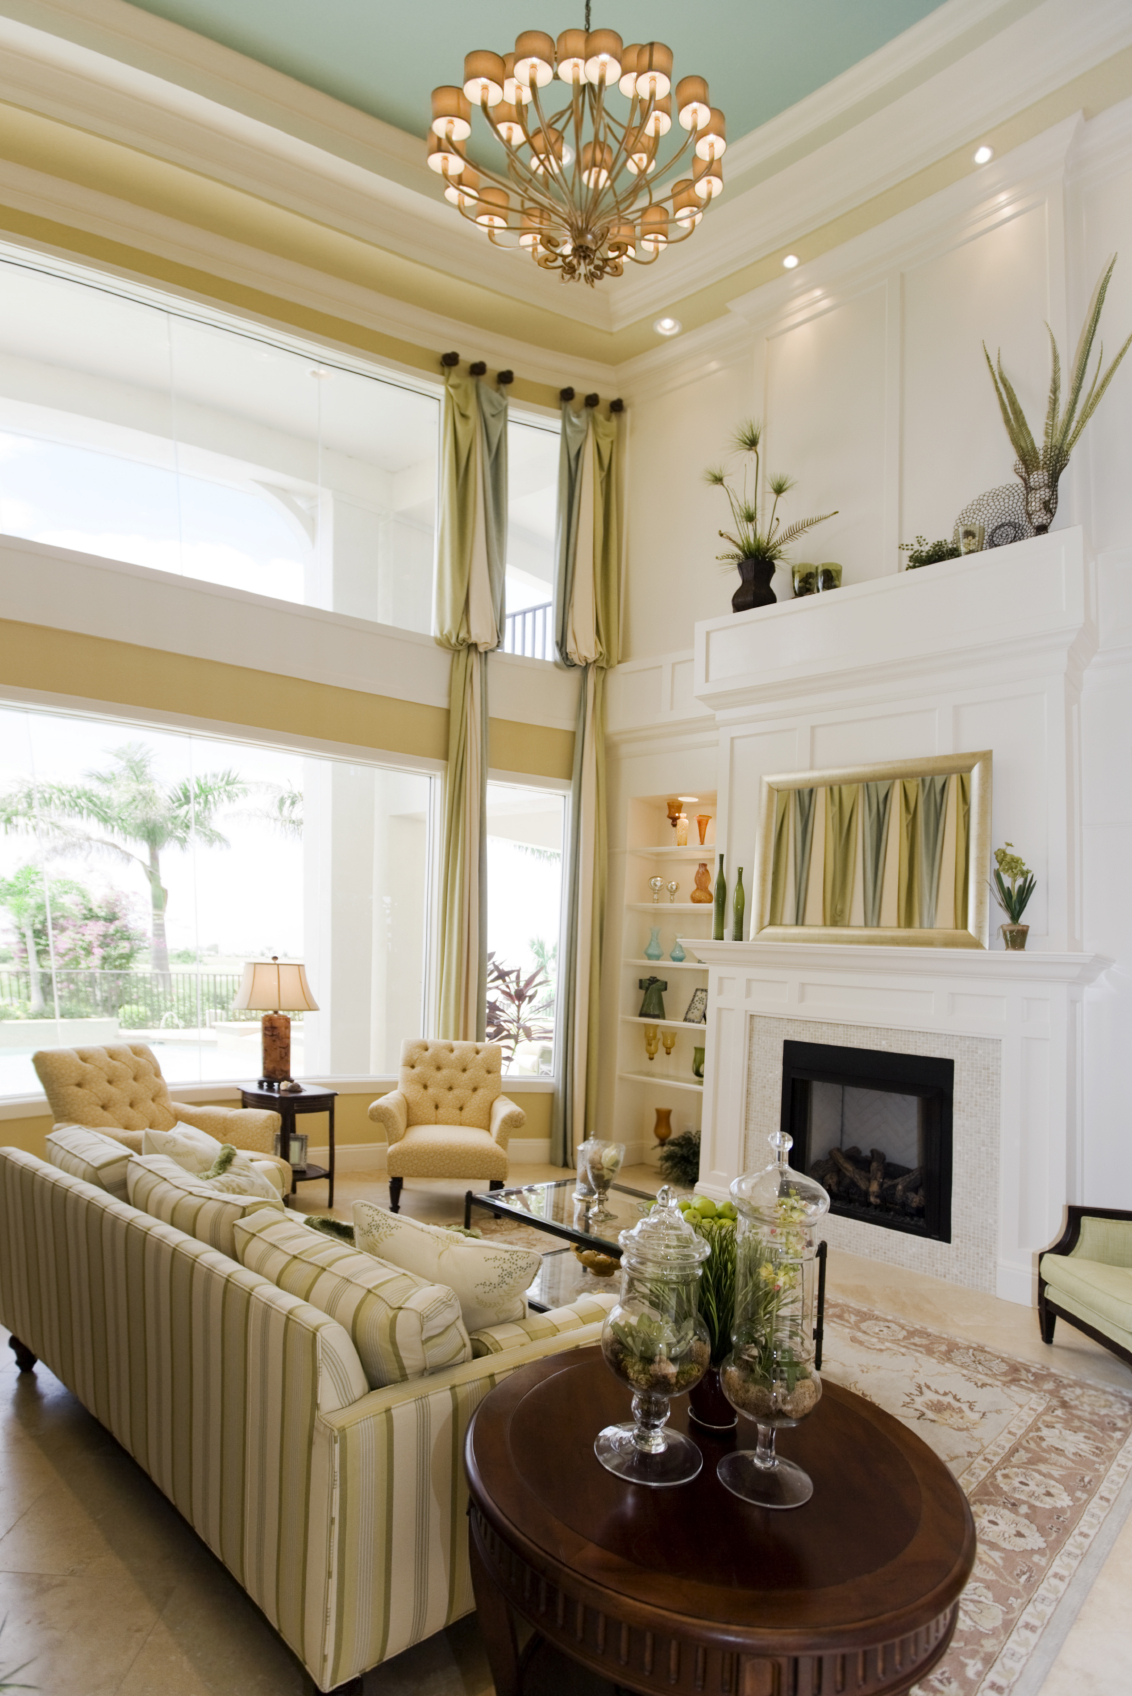 2 Story Great Room Decorating Ideas Part - 19: Bright Yellow And White Color Scheme Of This Living Room Helps Natural  Light Illuminate The Large